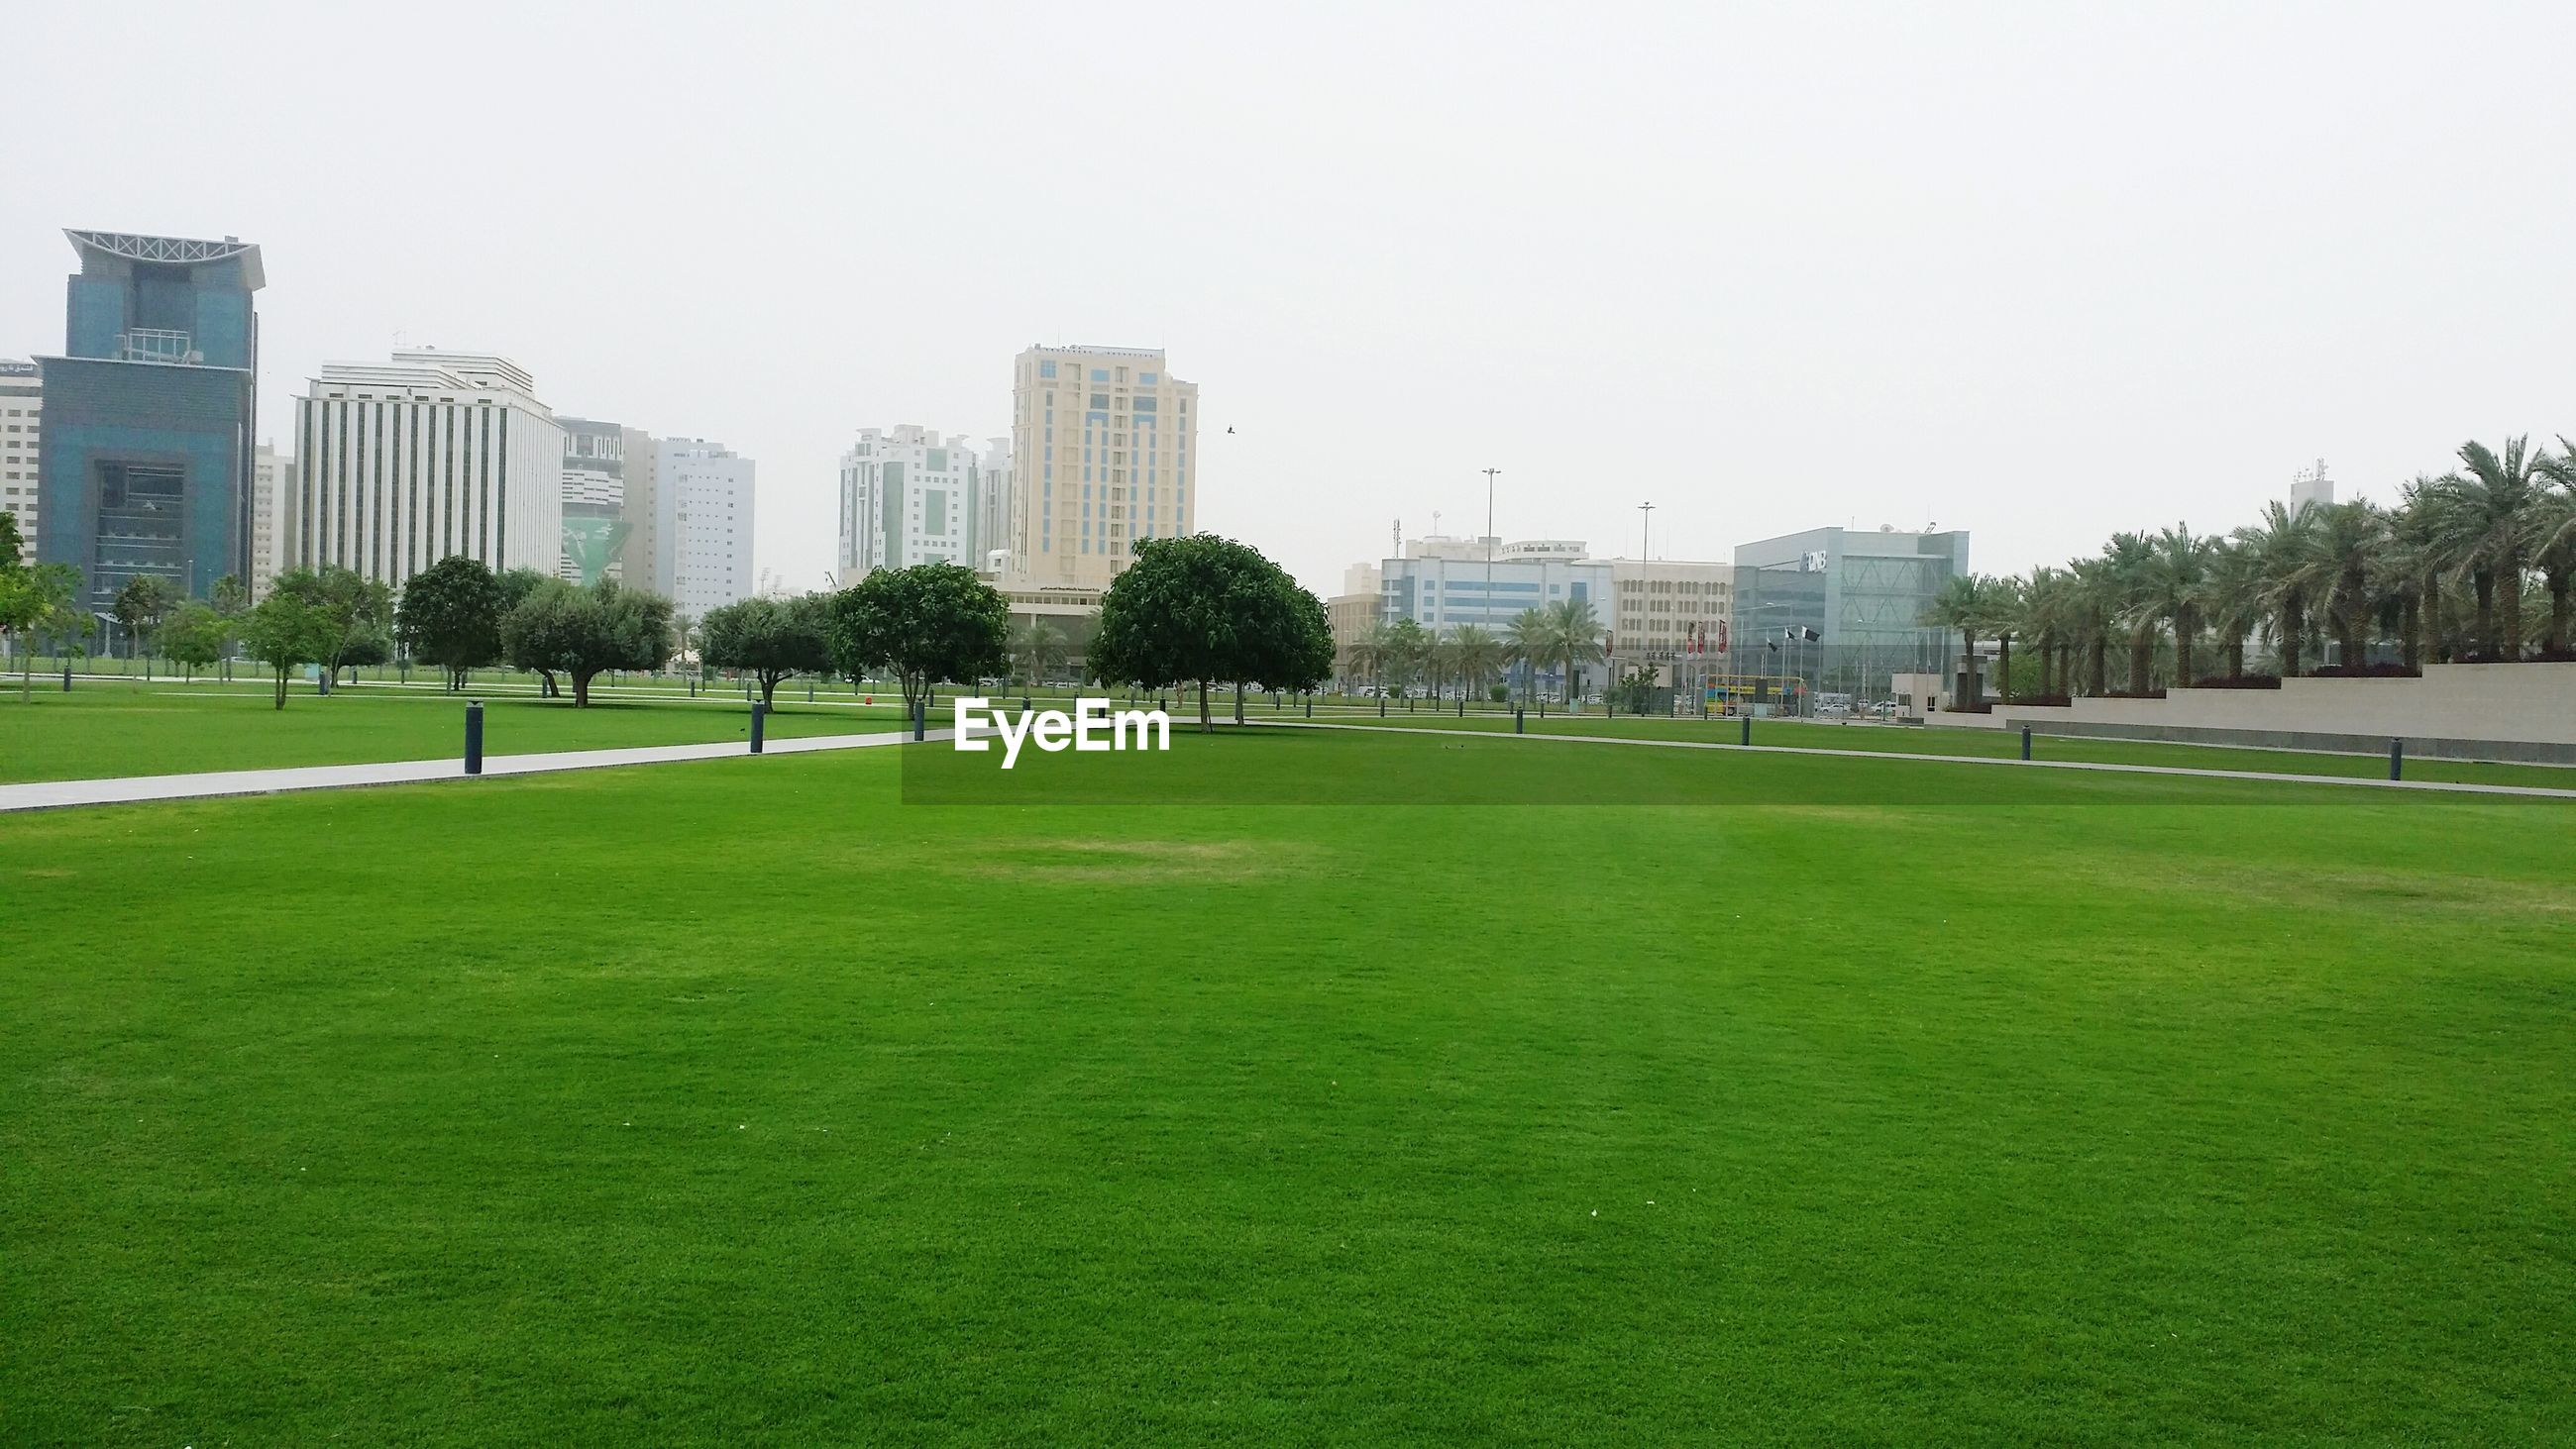 View of buildings in distance with grassland in foreground